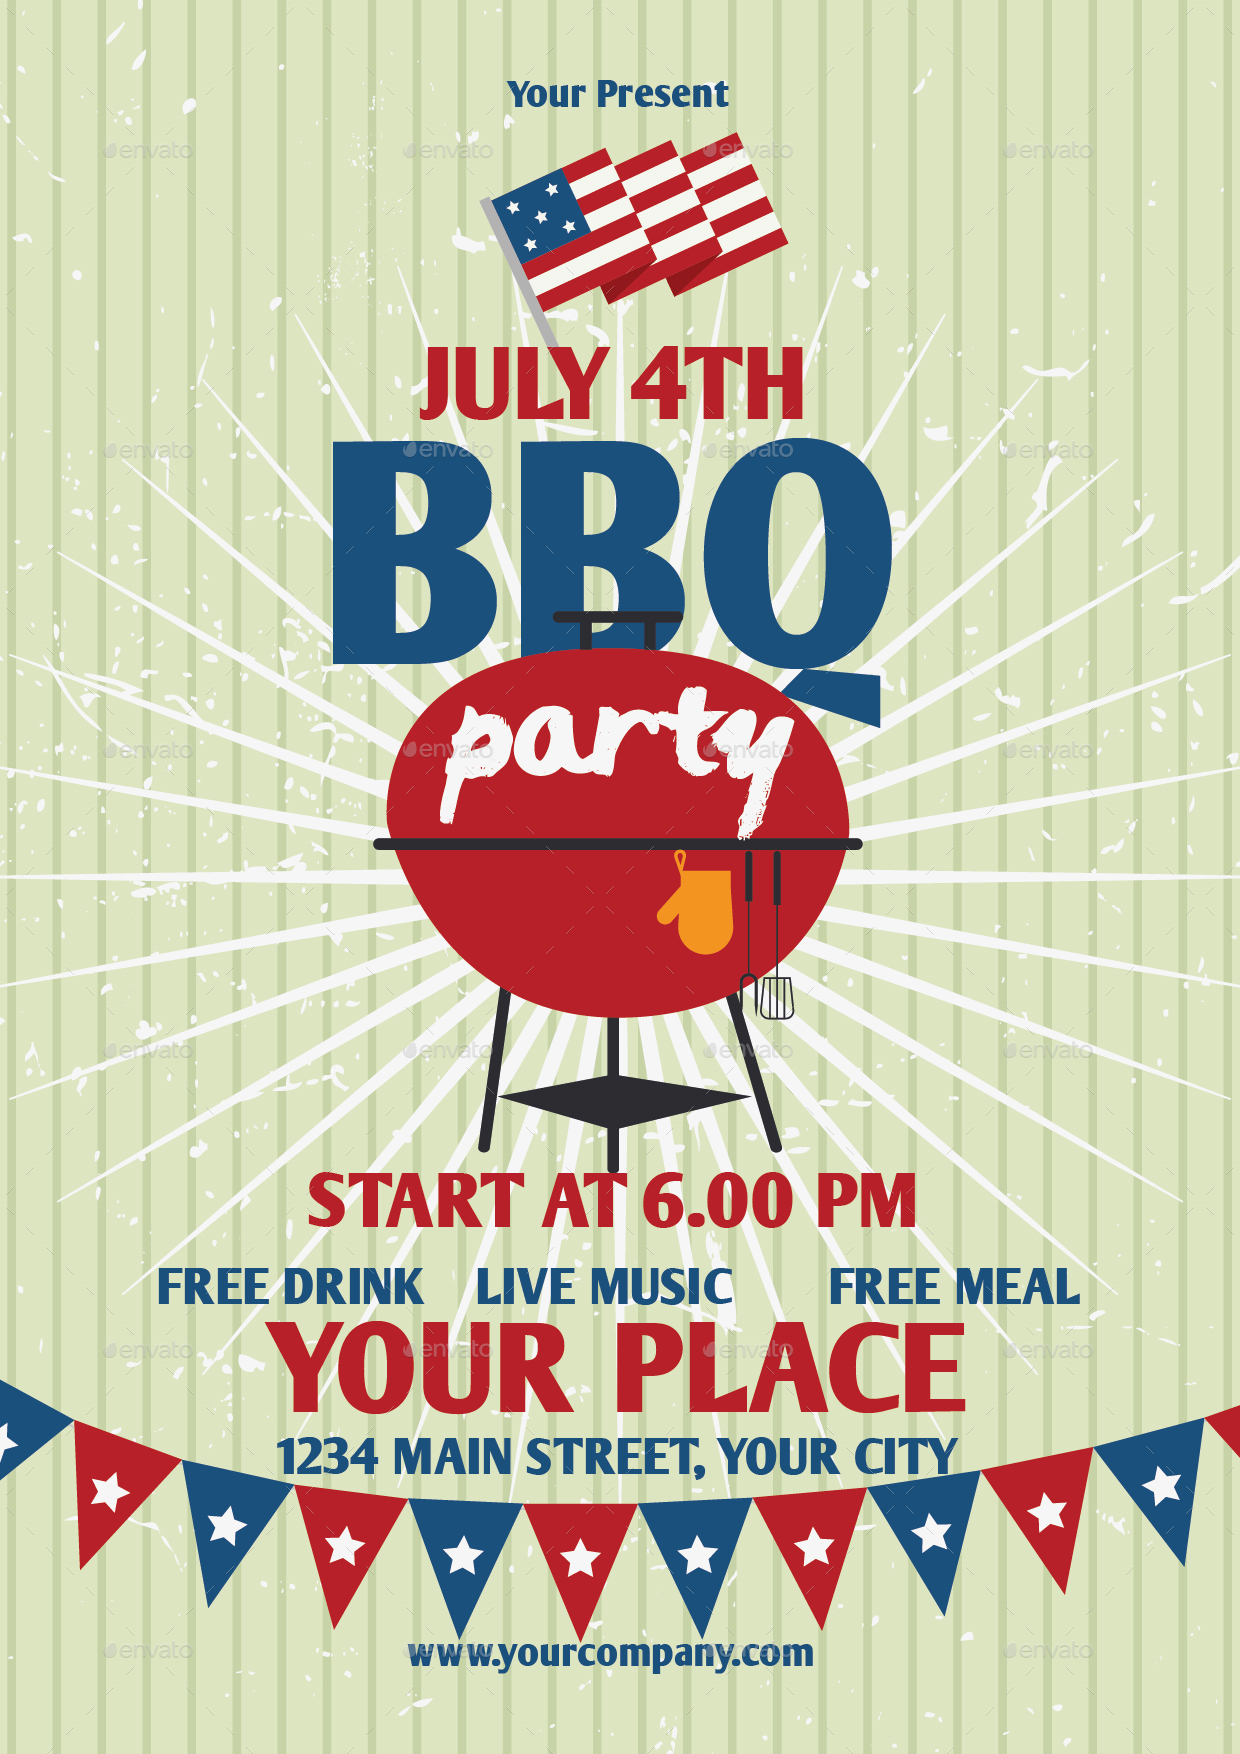 July 4th bbq party flyer template by lyllopop graphicriver for 4th of july menu template